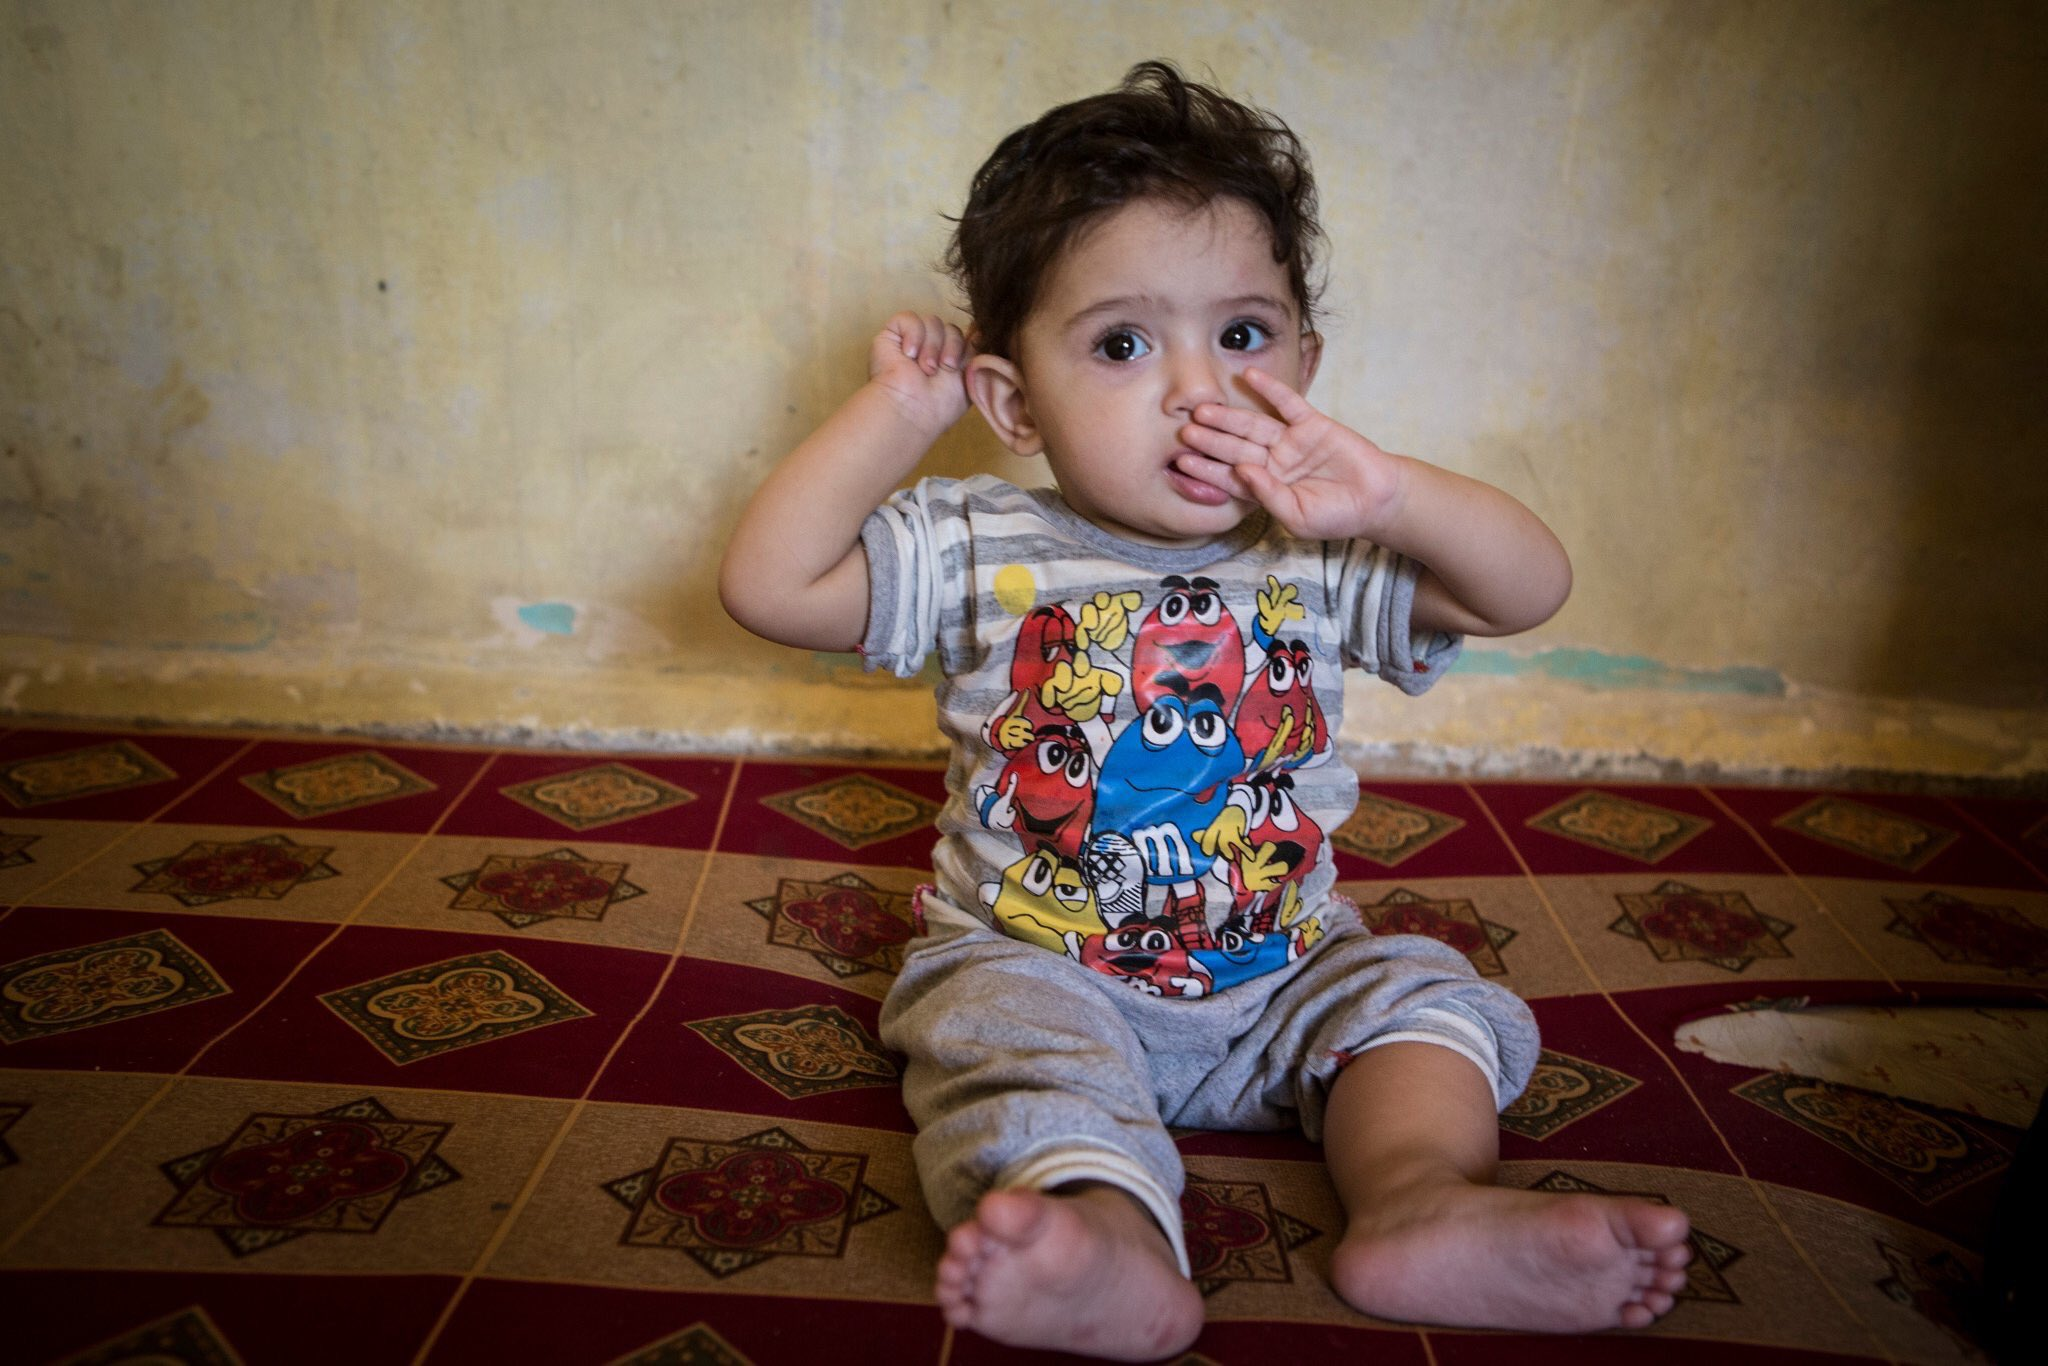 This #Ramadan the children of #Syria need your help, Donate today https://t.co/teDoEutL9d https://t.co/4hGYyPyDT7